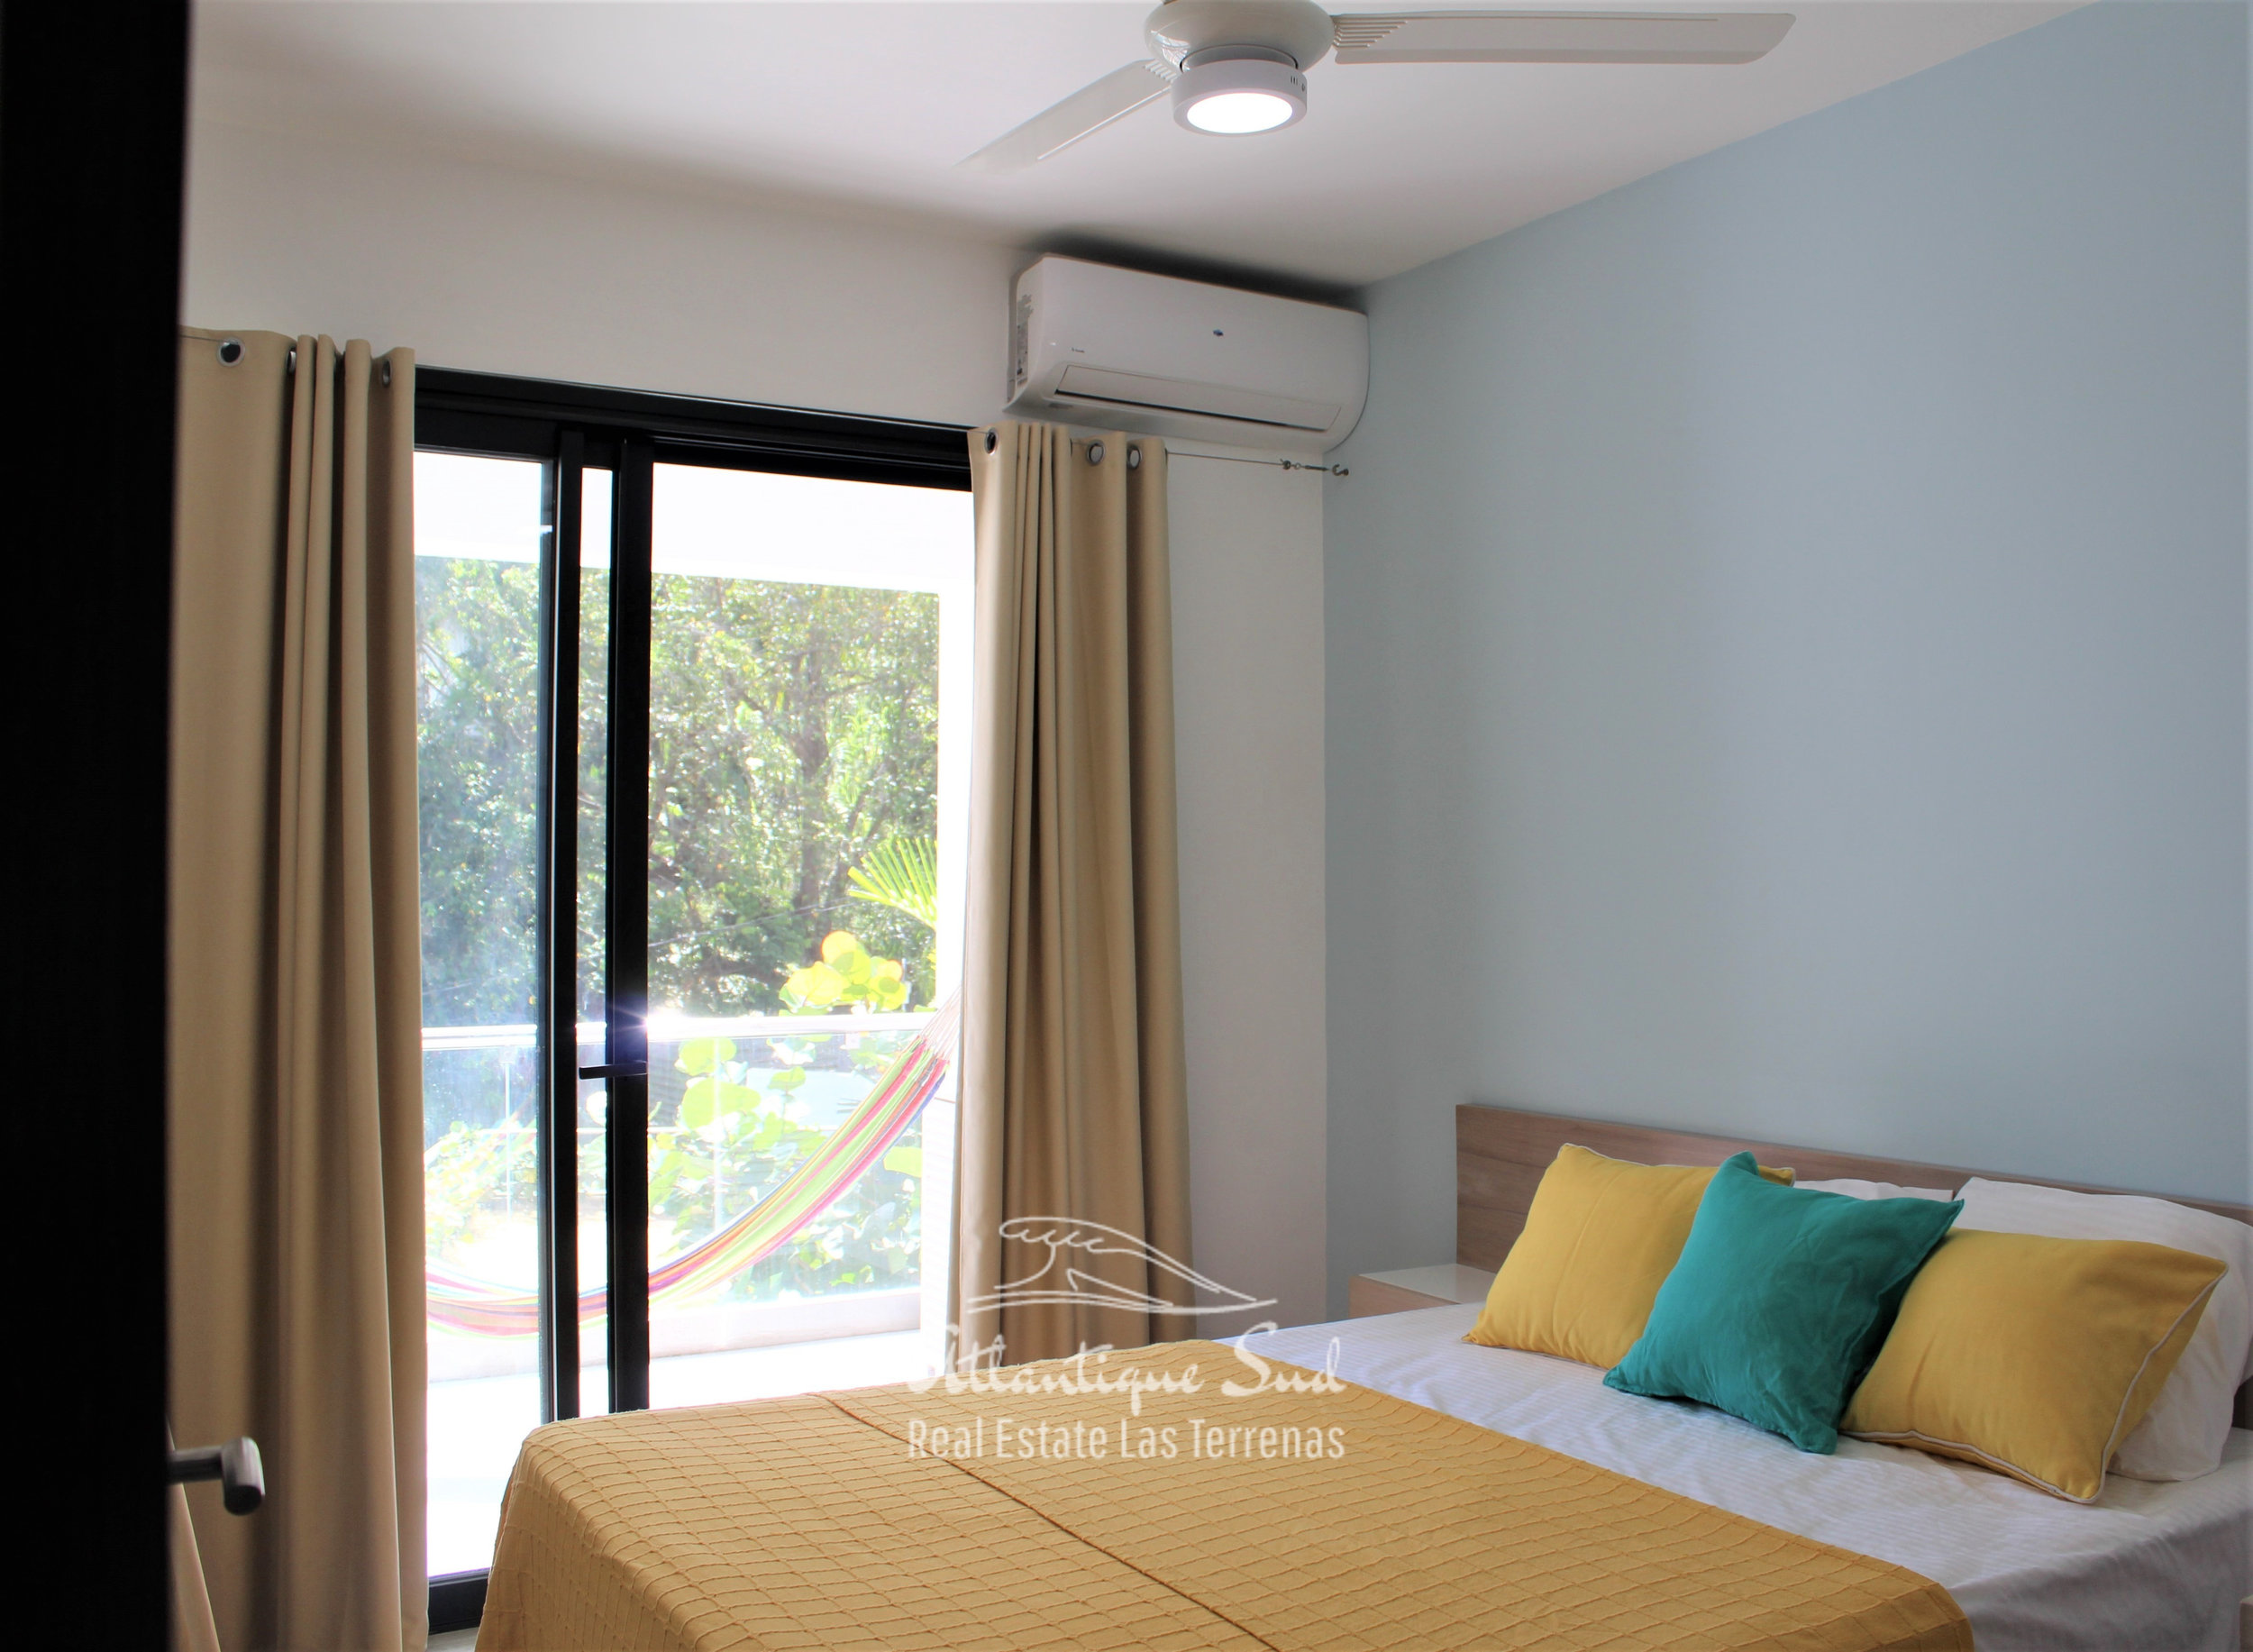 Cozy-1-bedroom-apartment-in-gated-community-close-to-the-center-of-lasterrenas3.jpg